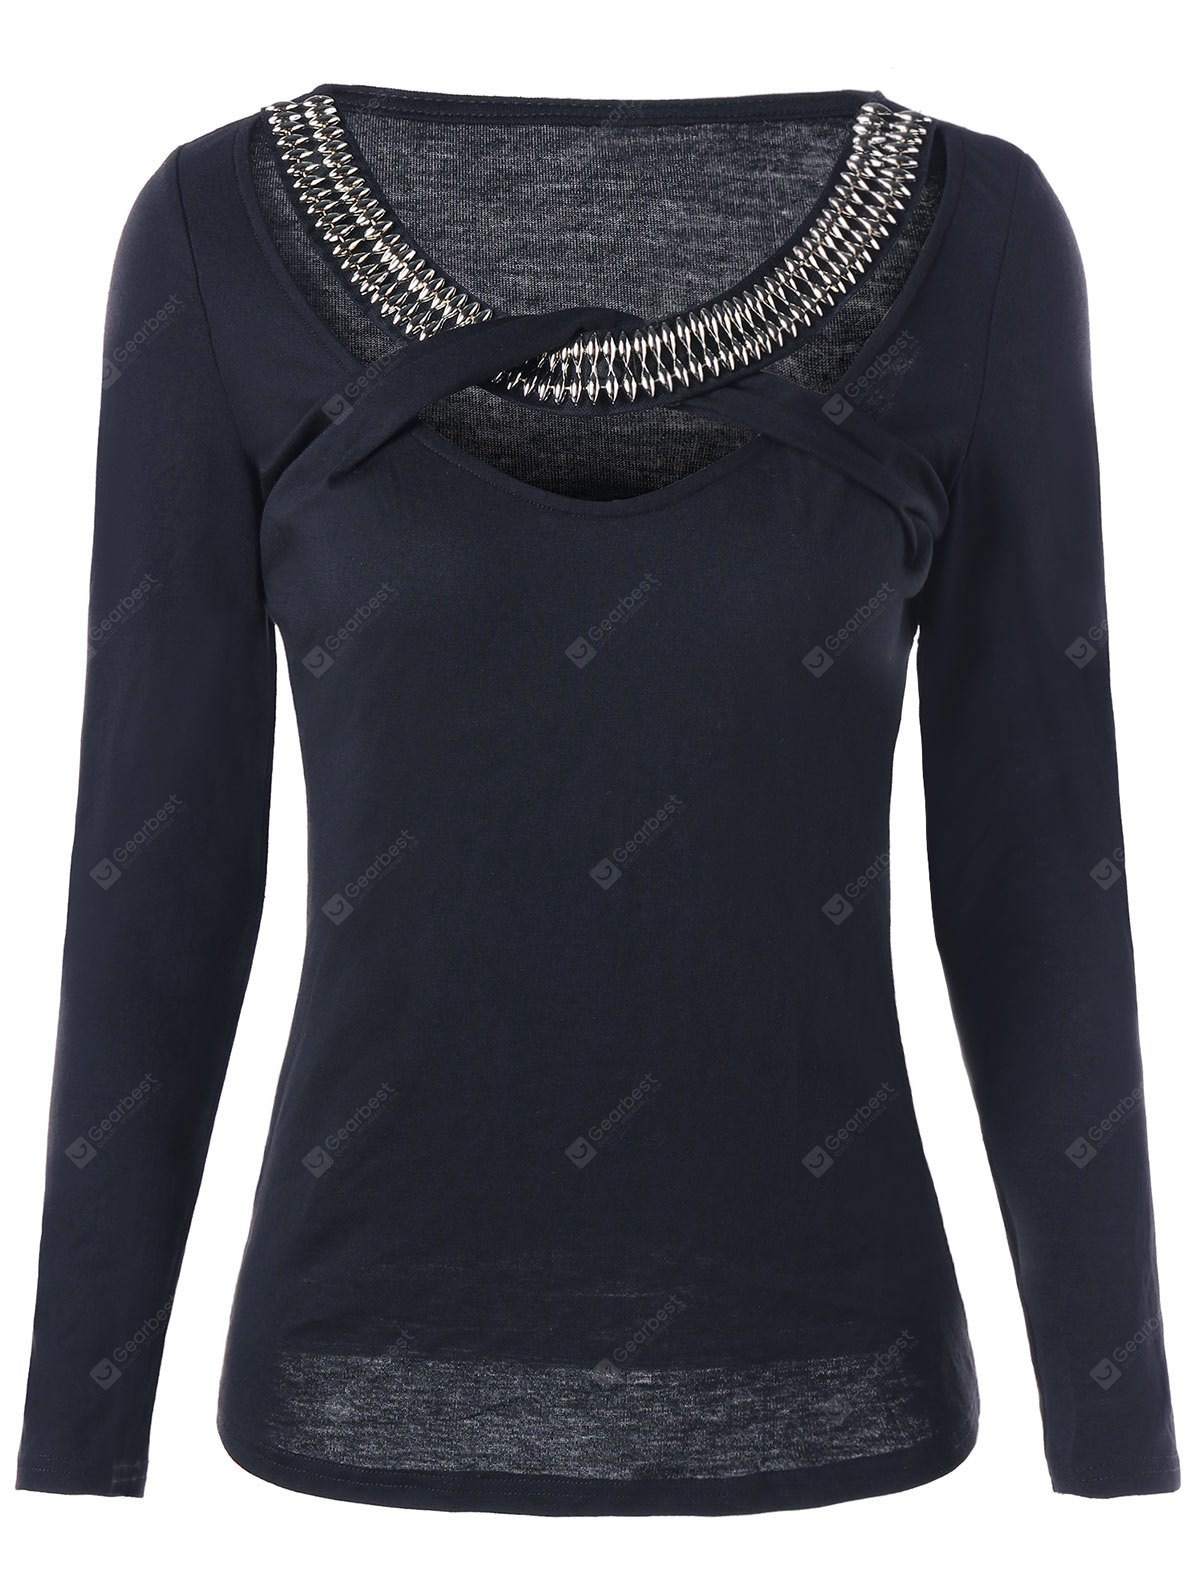 BLACK 2XL Beaded Embellished Criss Cross Cut Out Top